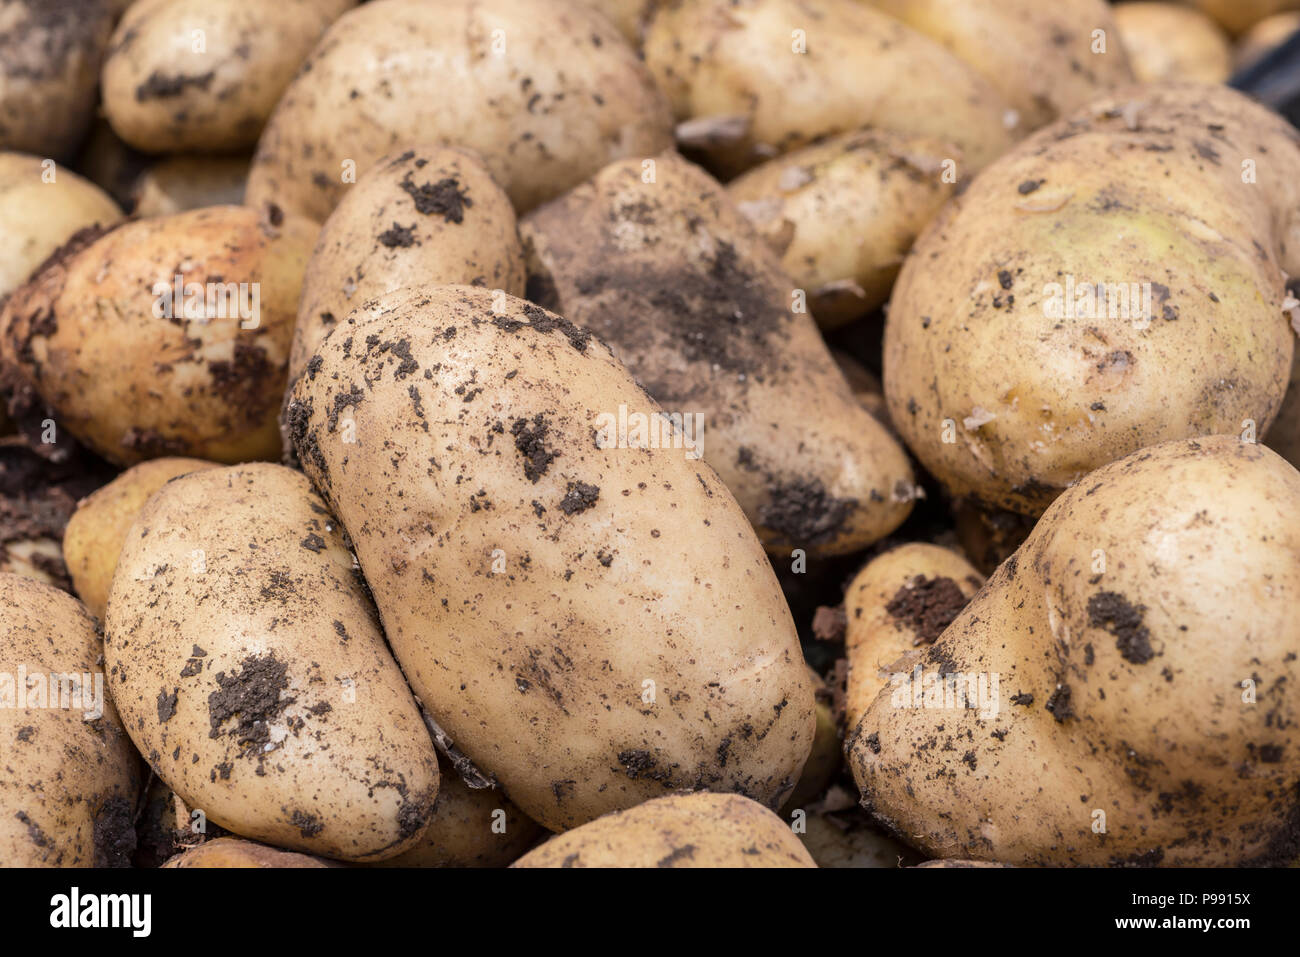 Potatoes in a market - Stock Image